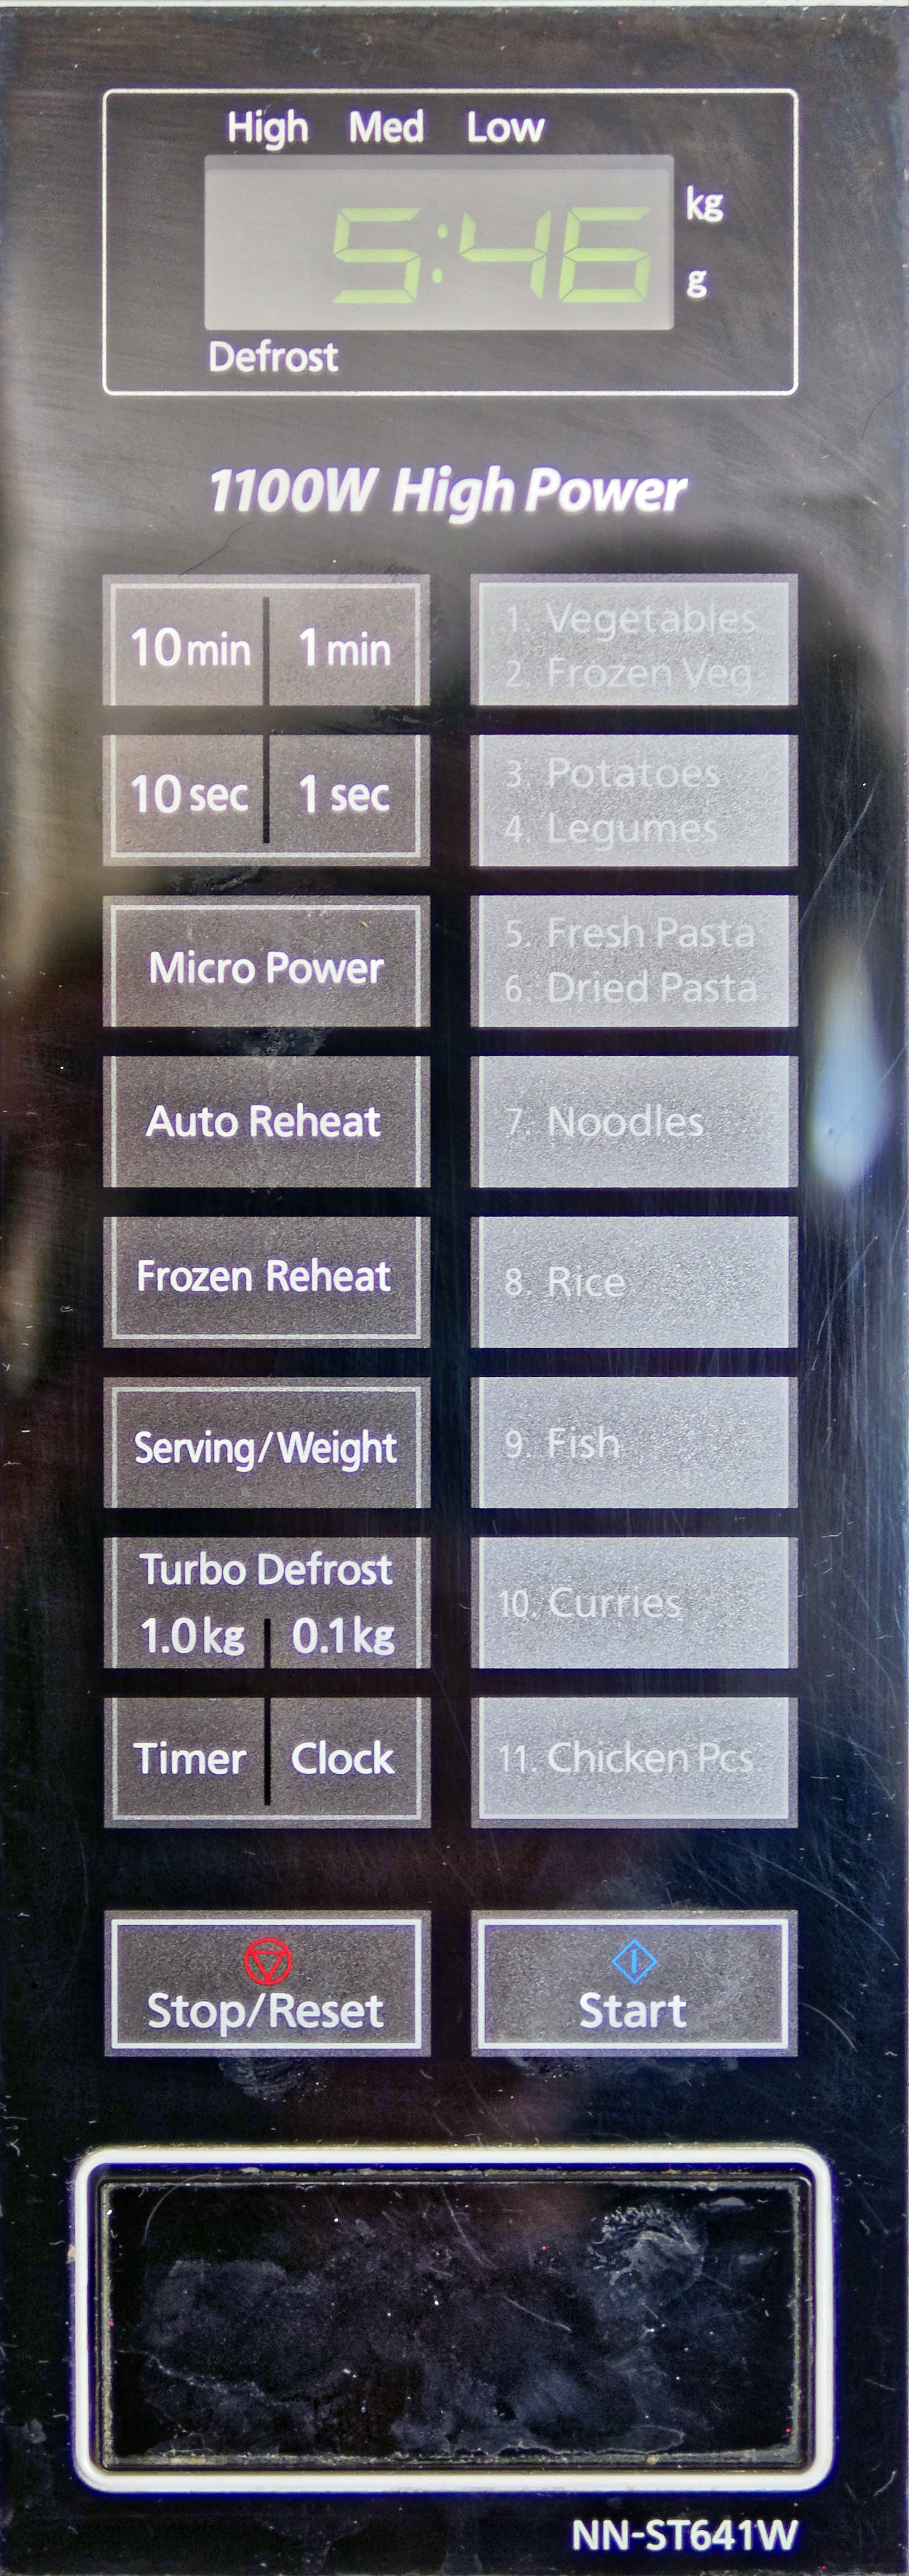 Microwave-oven-controls-1.jpeg